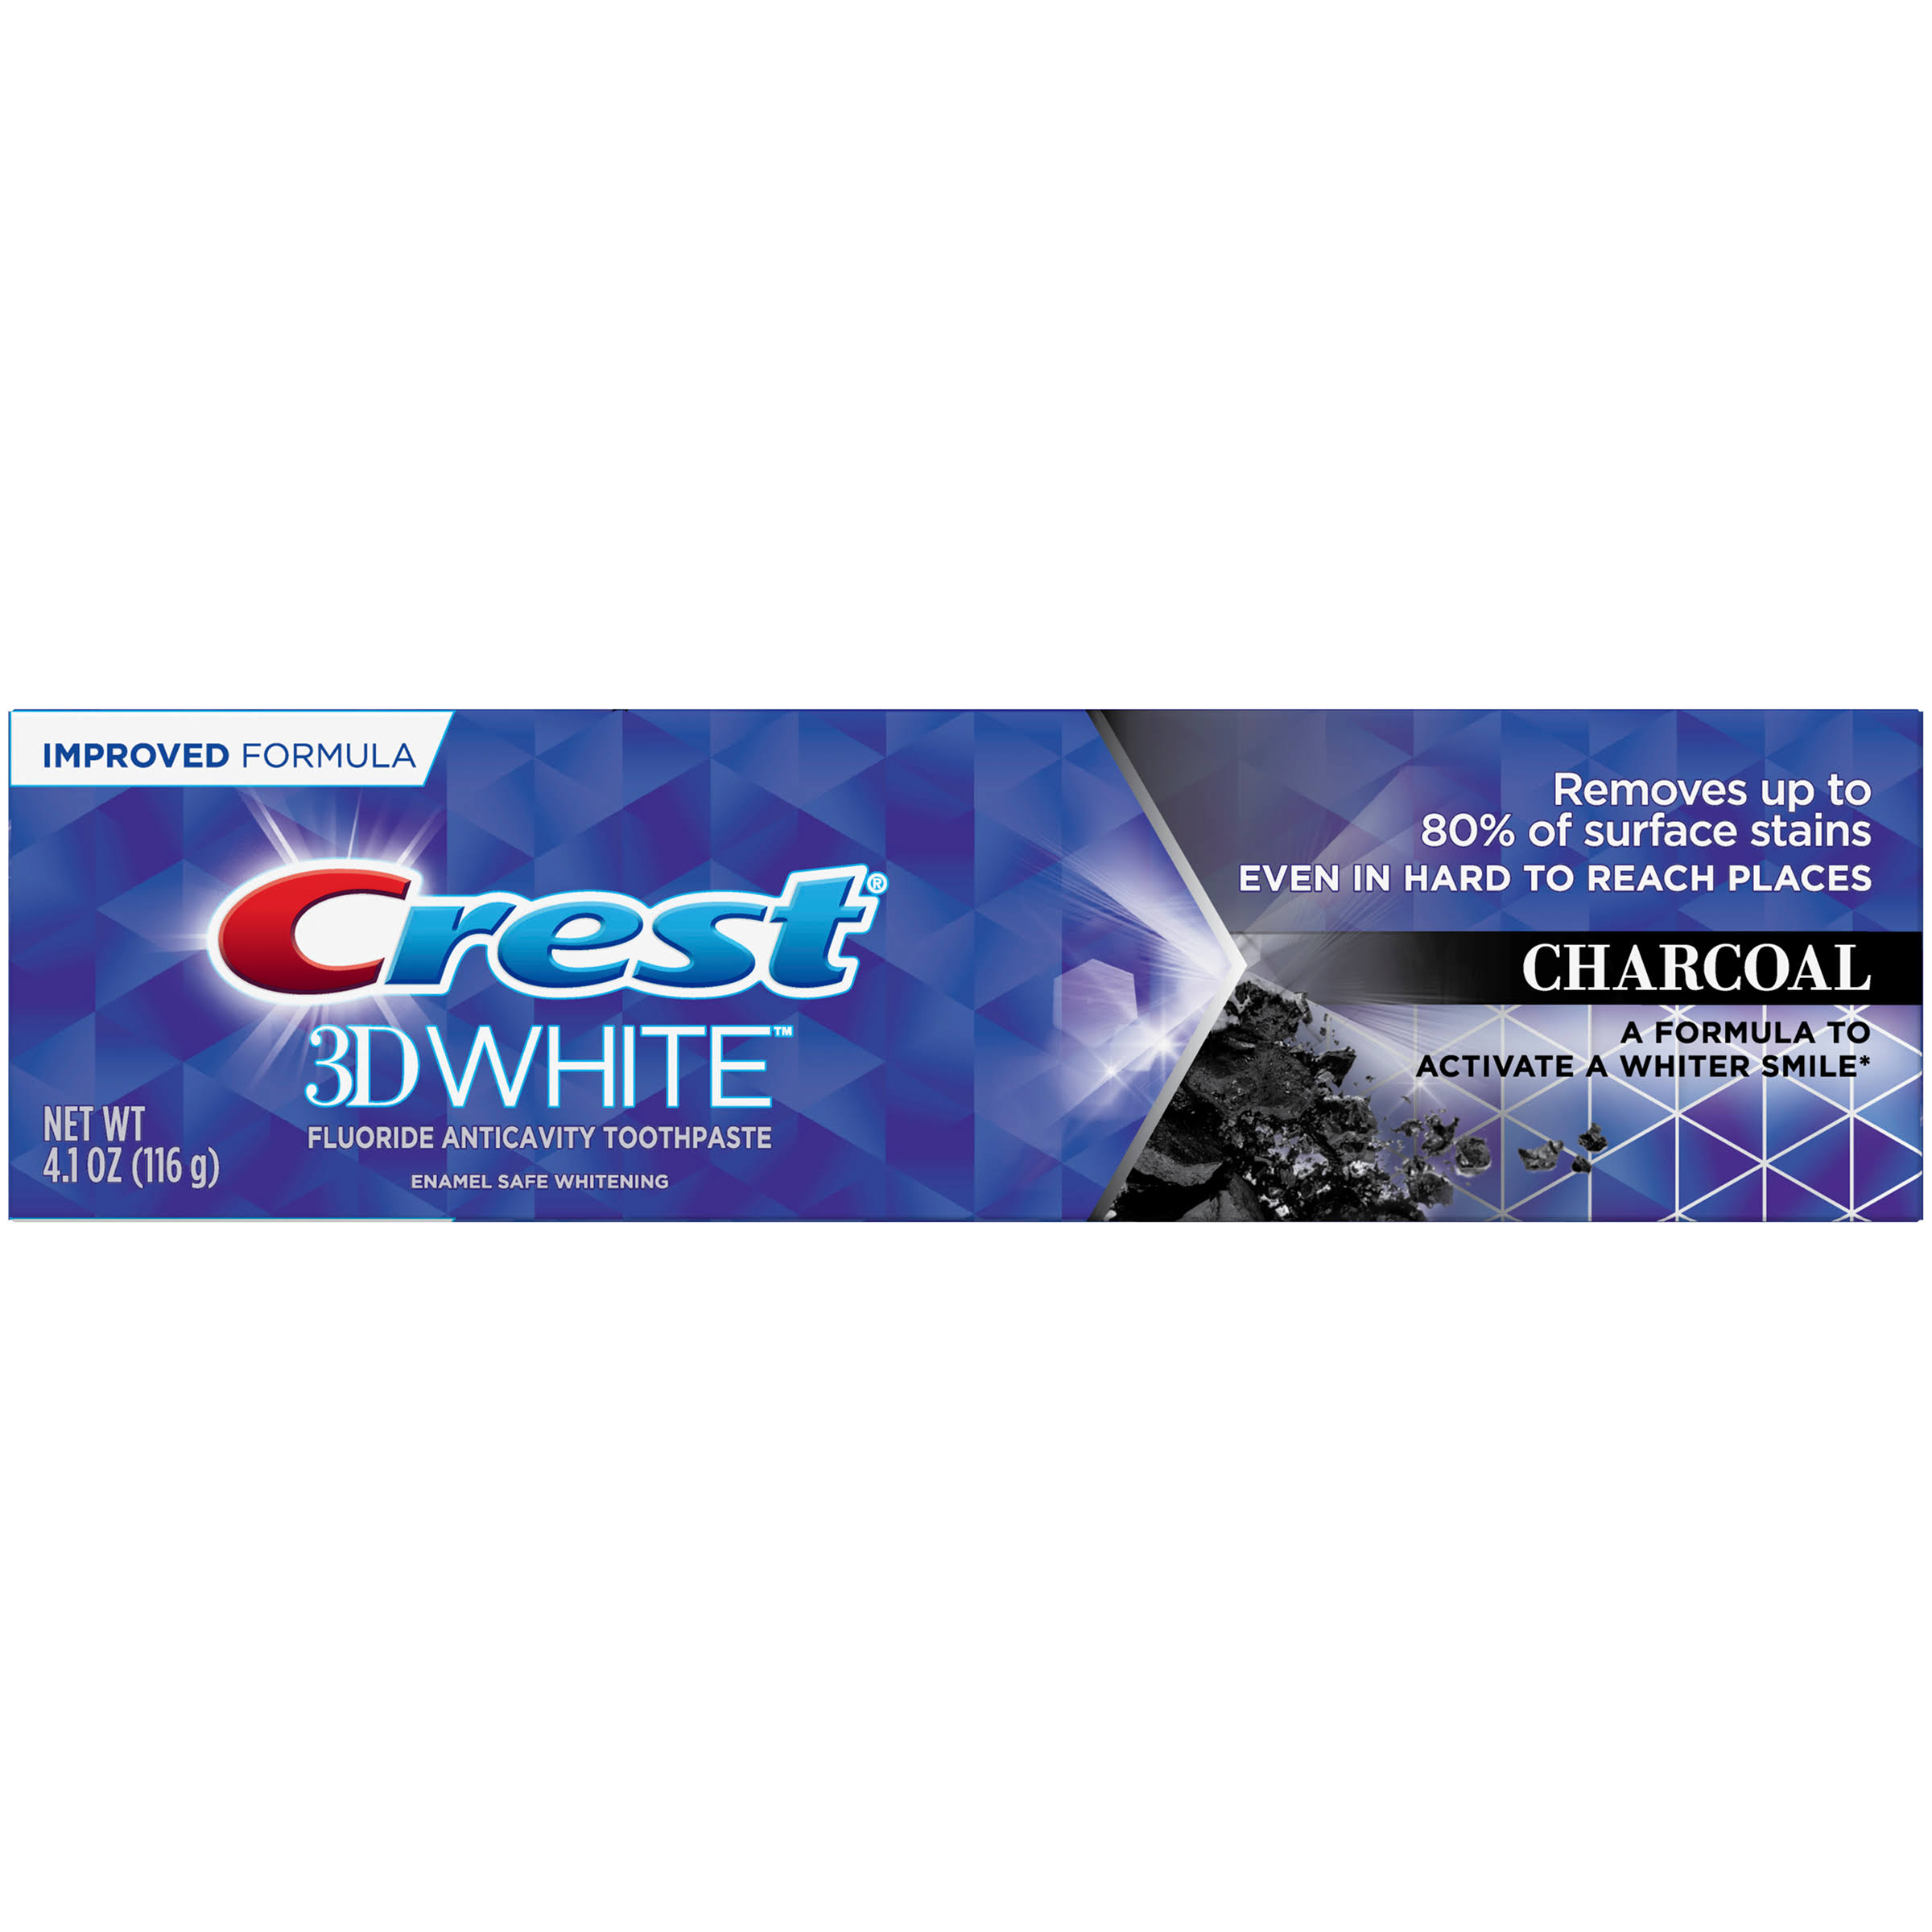 Crest 3D White Whitening Toothpaste - Charcoal, 4.1oz